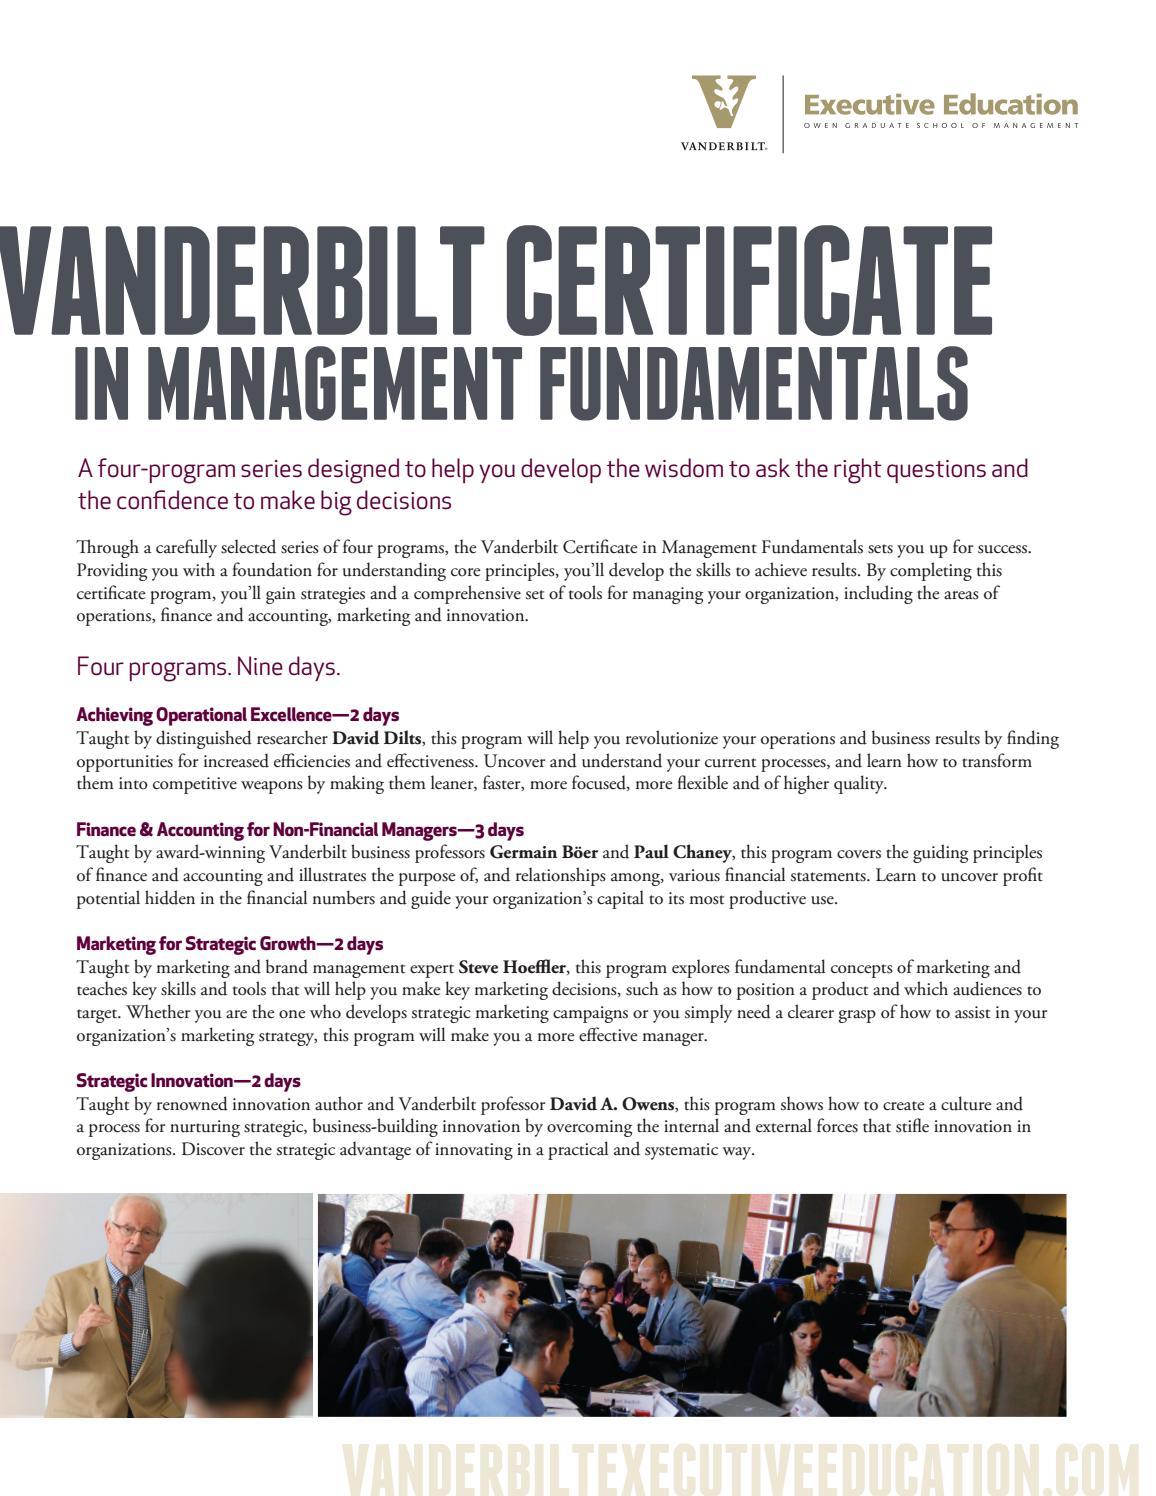 Executive Education Certificate In Mgt Fundamentals By Vanderbilt